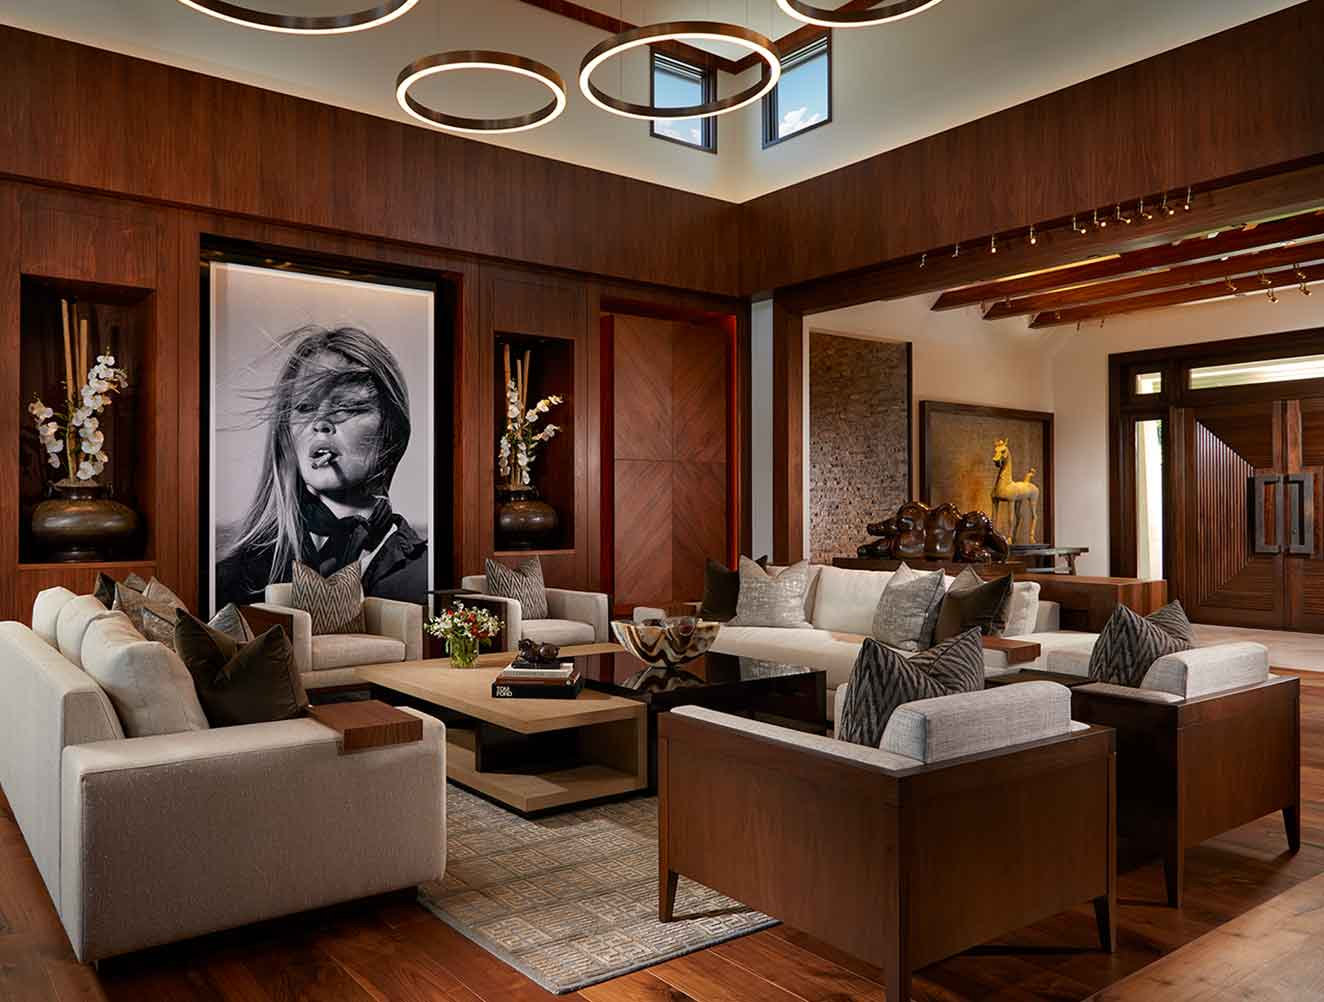 Living Room of Tranquility Estate in Naples Florida, single family home designed by Kukk Architecture & Design Naples Architecture Firm